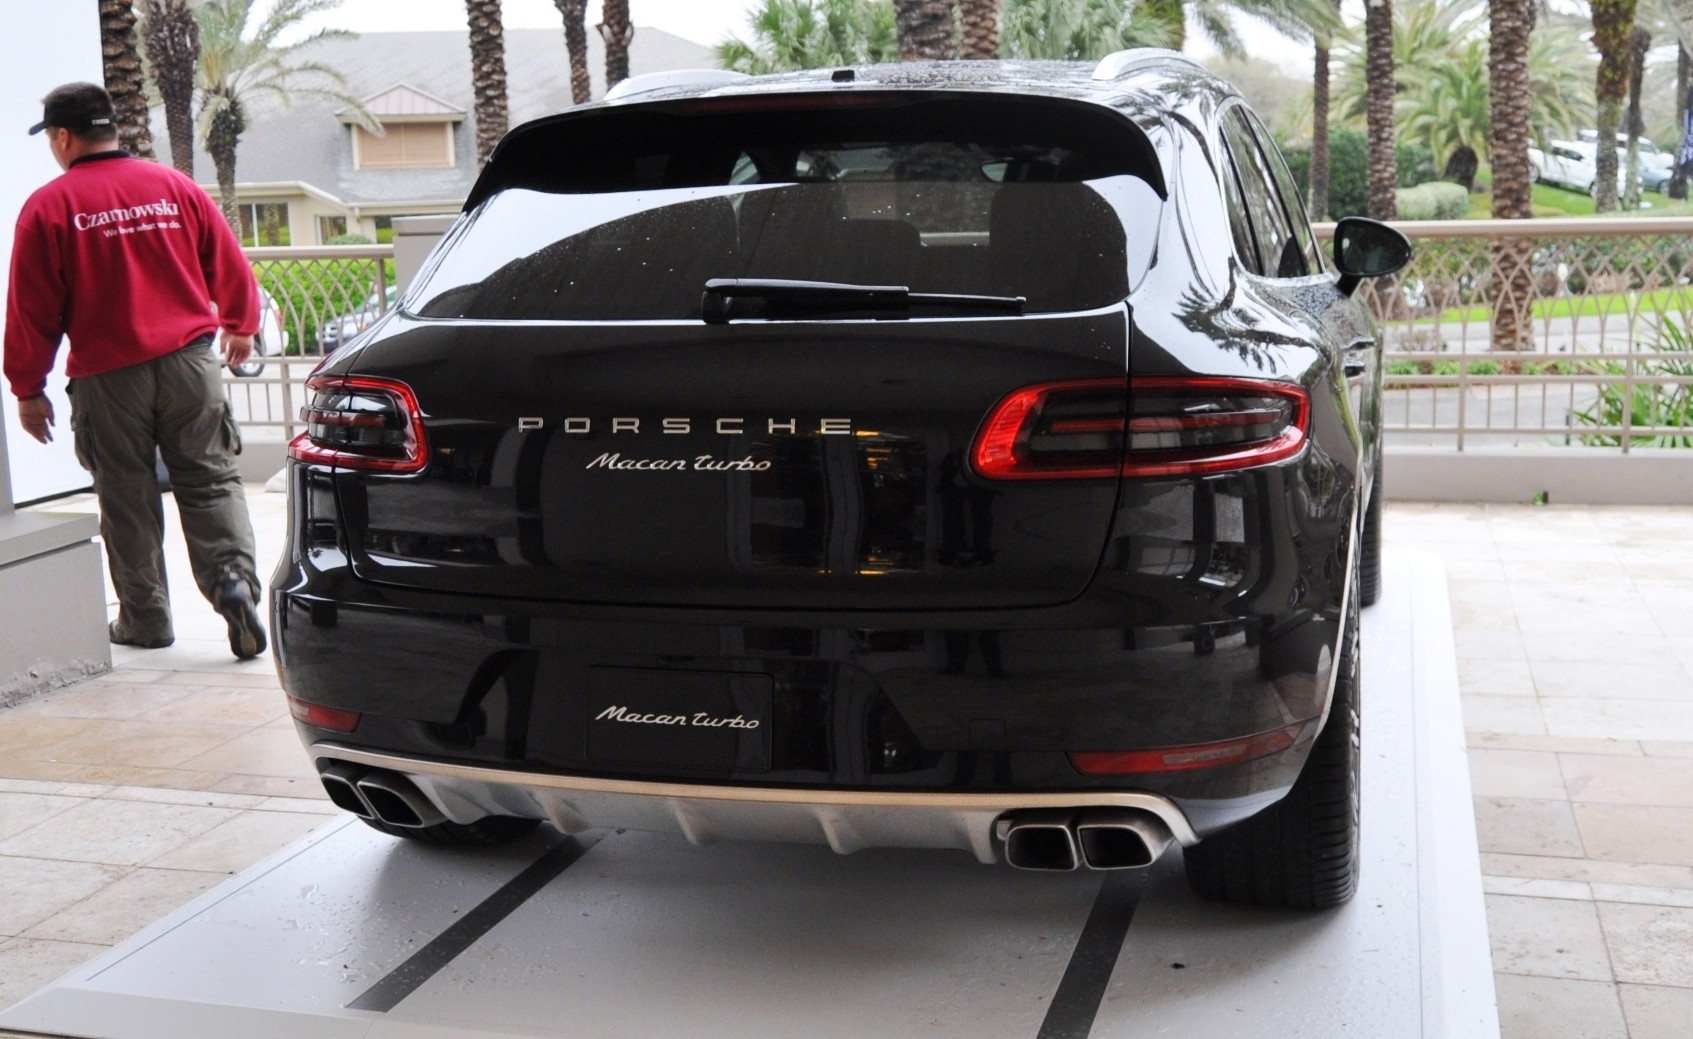 2015 Porsche Macan Turbo -- Looking Amazing, Athletic and Nimble -- 50+ Real-Life Photos Inside and Out 21